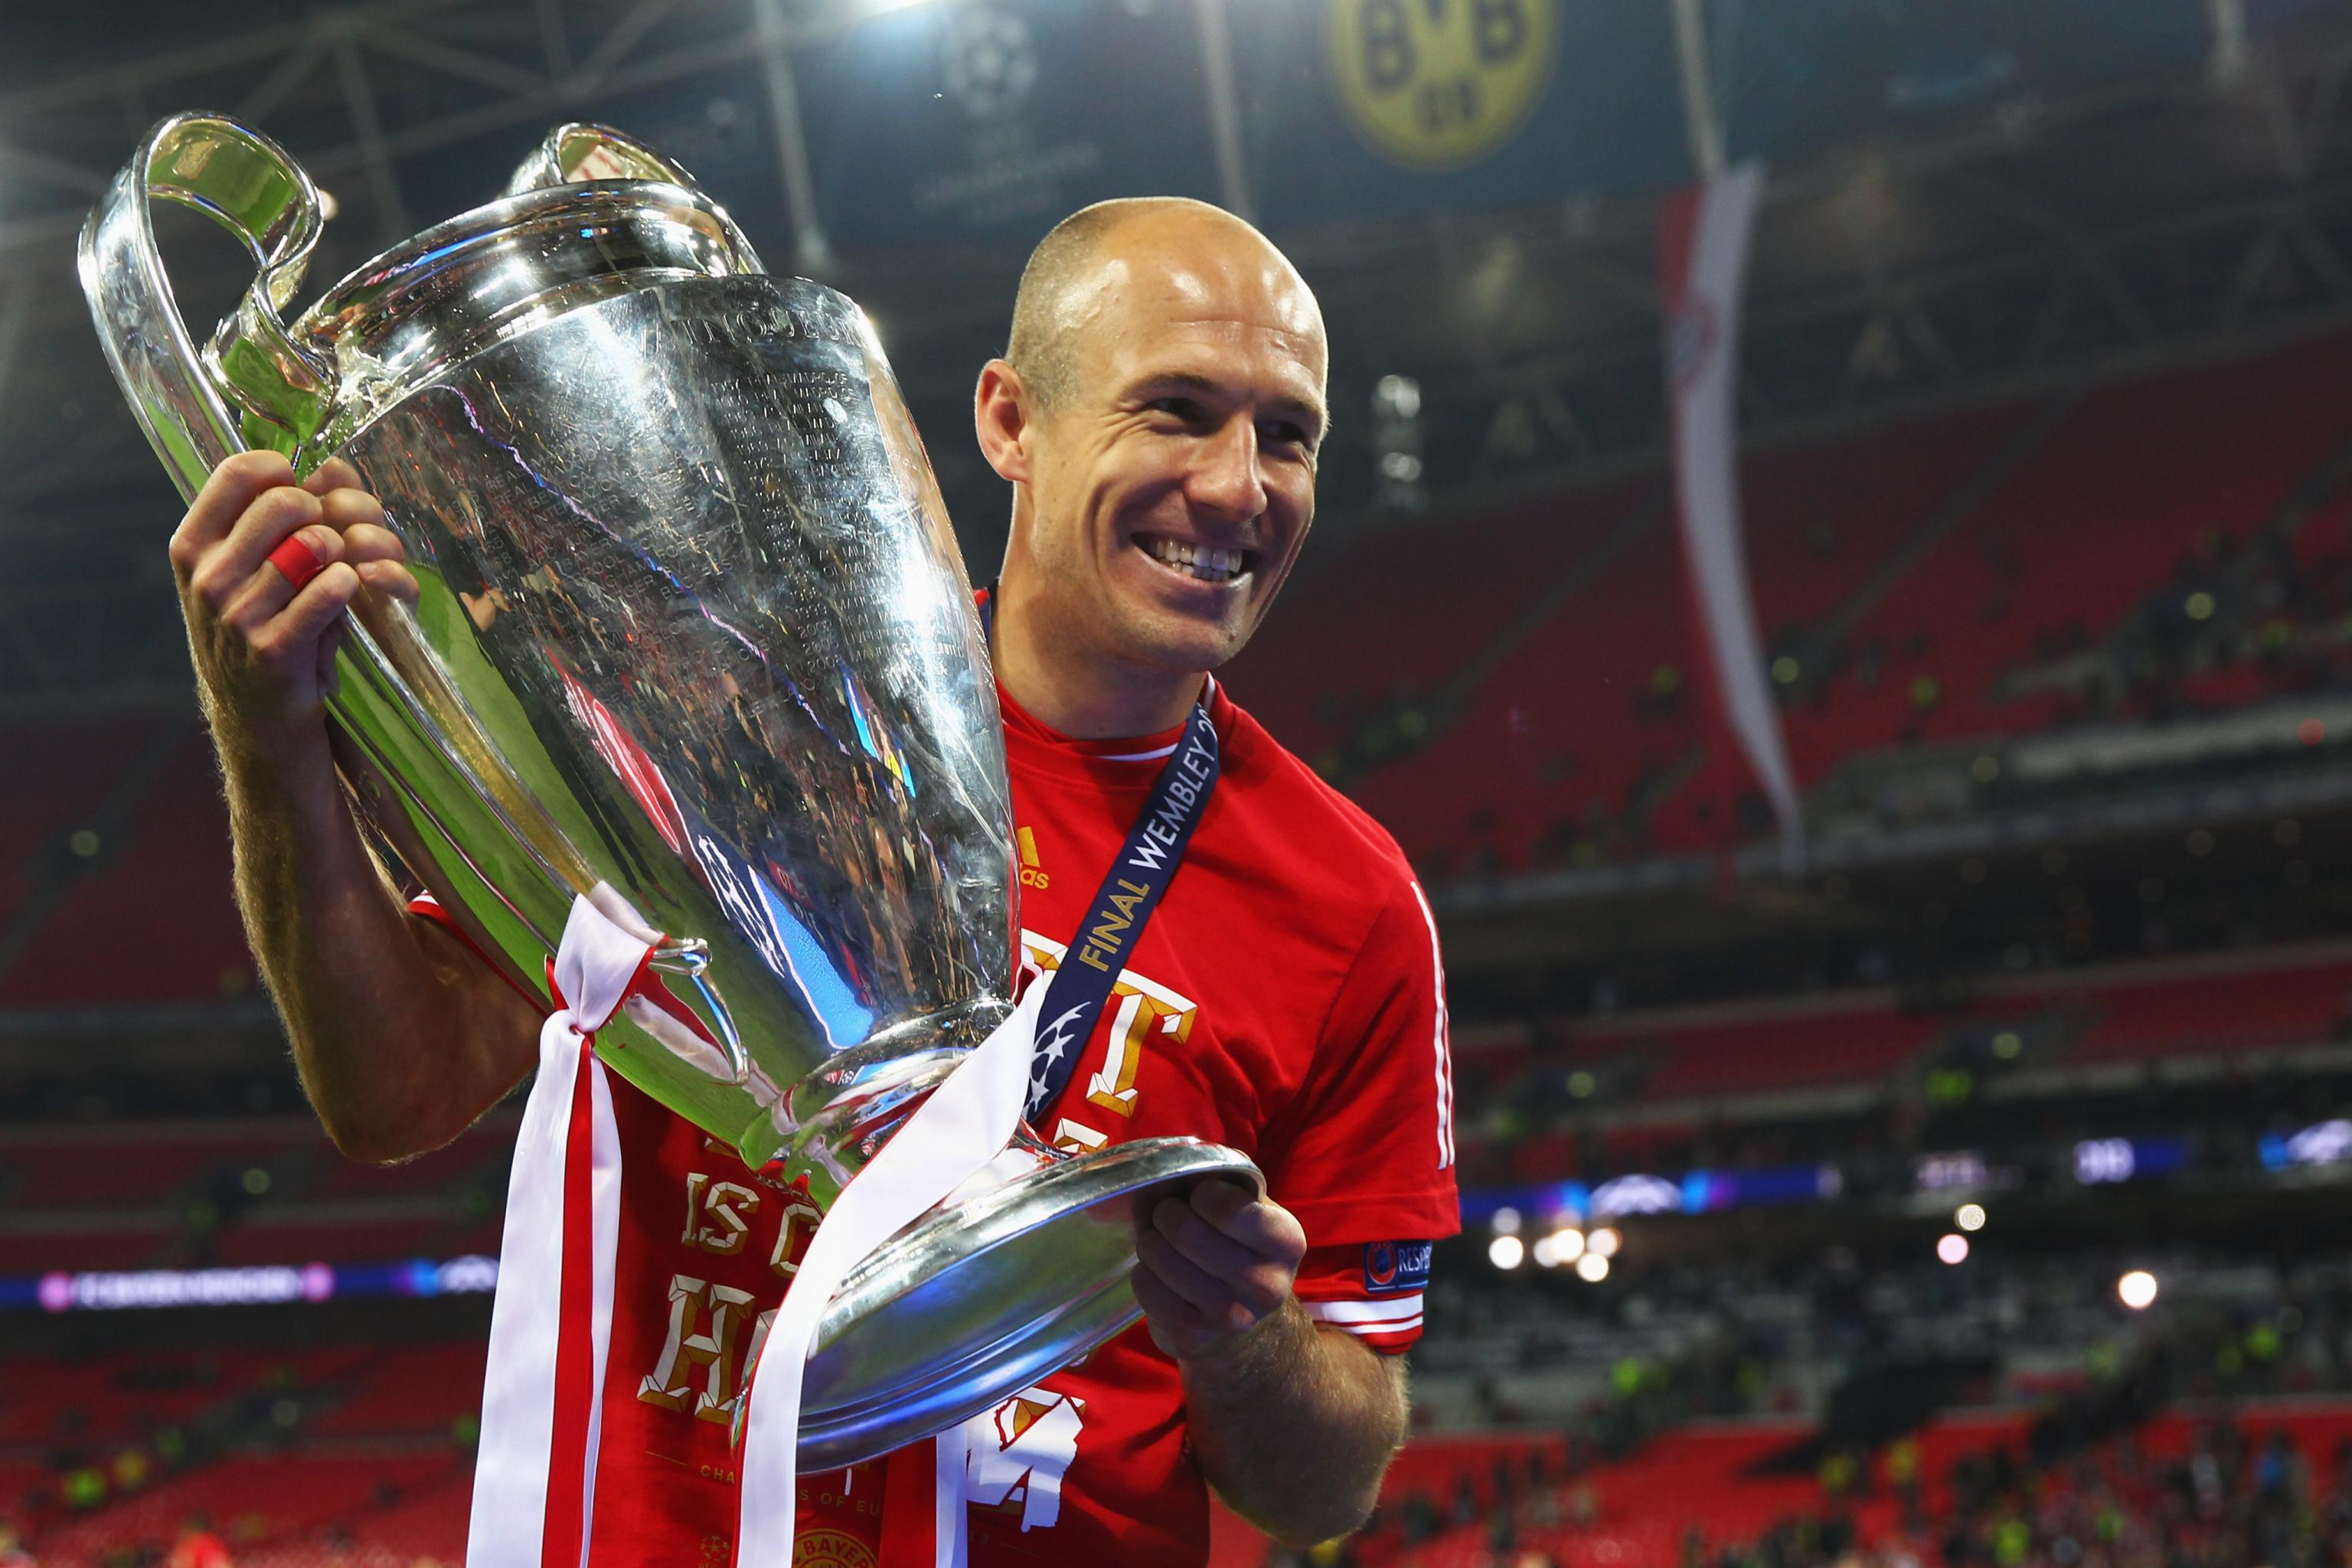 Champions League Bayern Munich And Arjen Robben Winner Replicated In Lego Bleacher Report Latest News Videos And Highlights